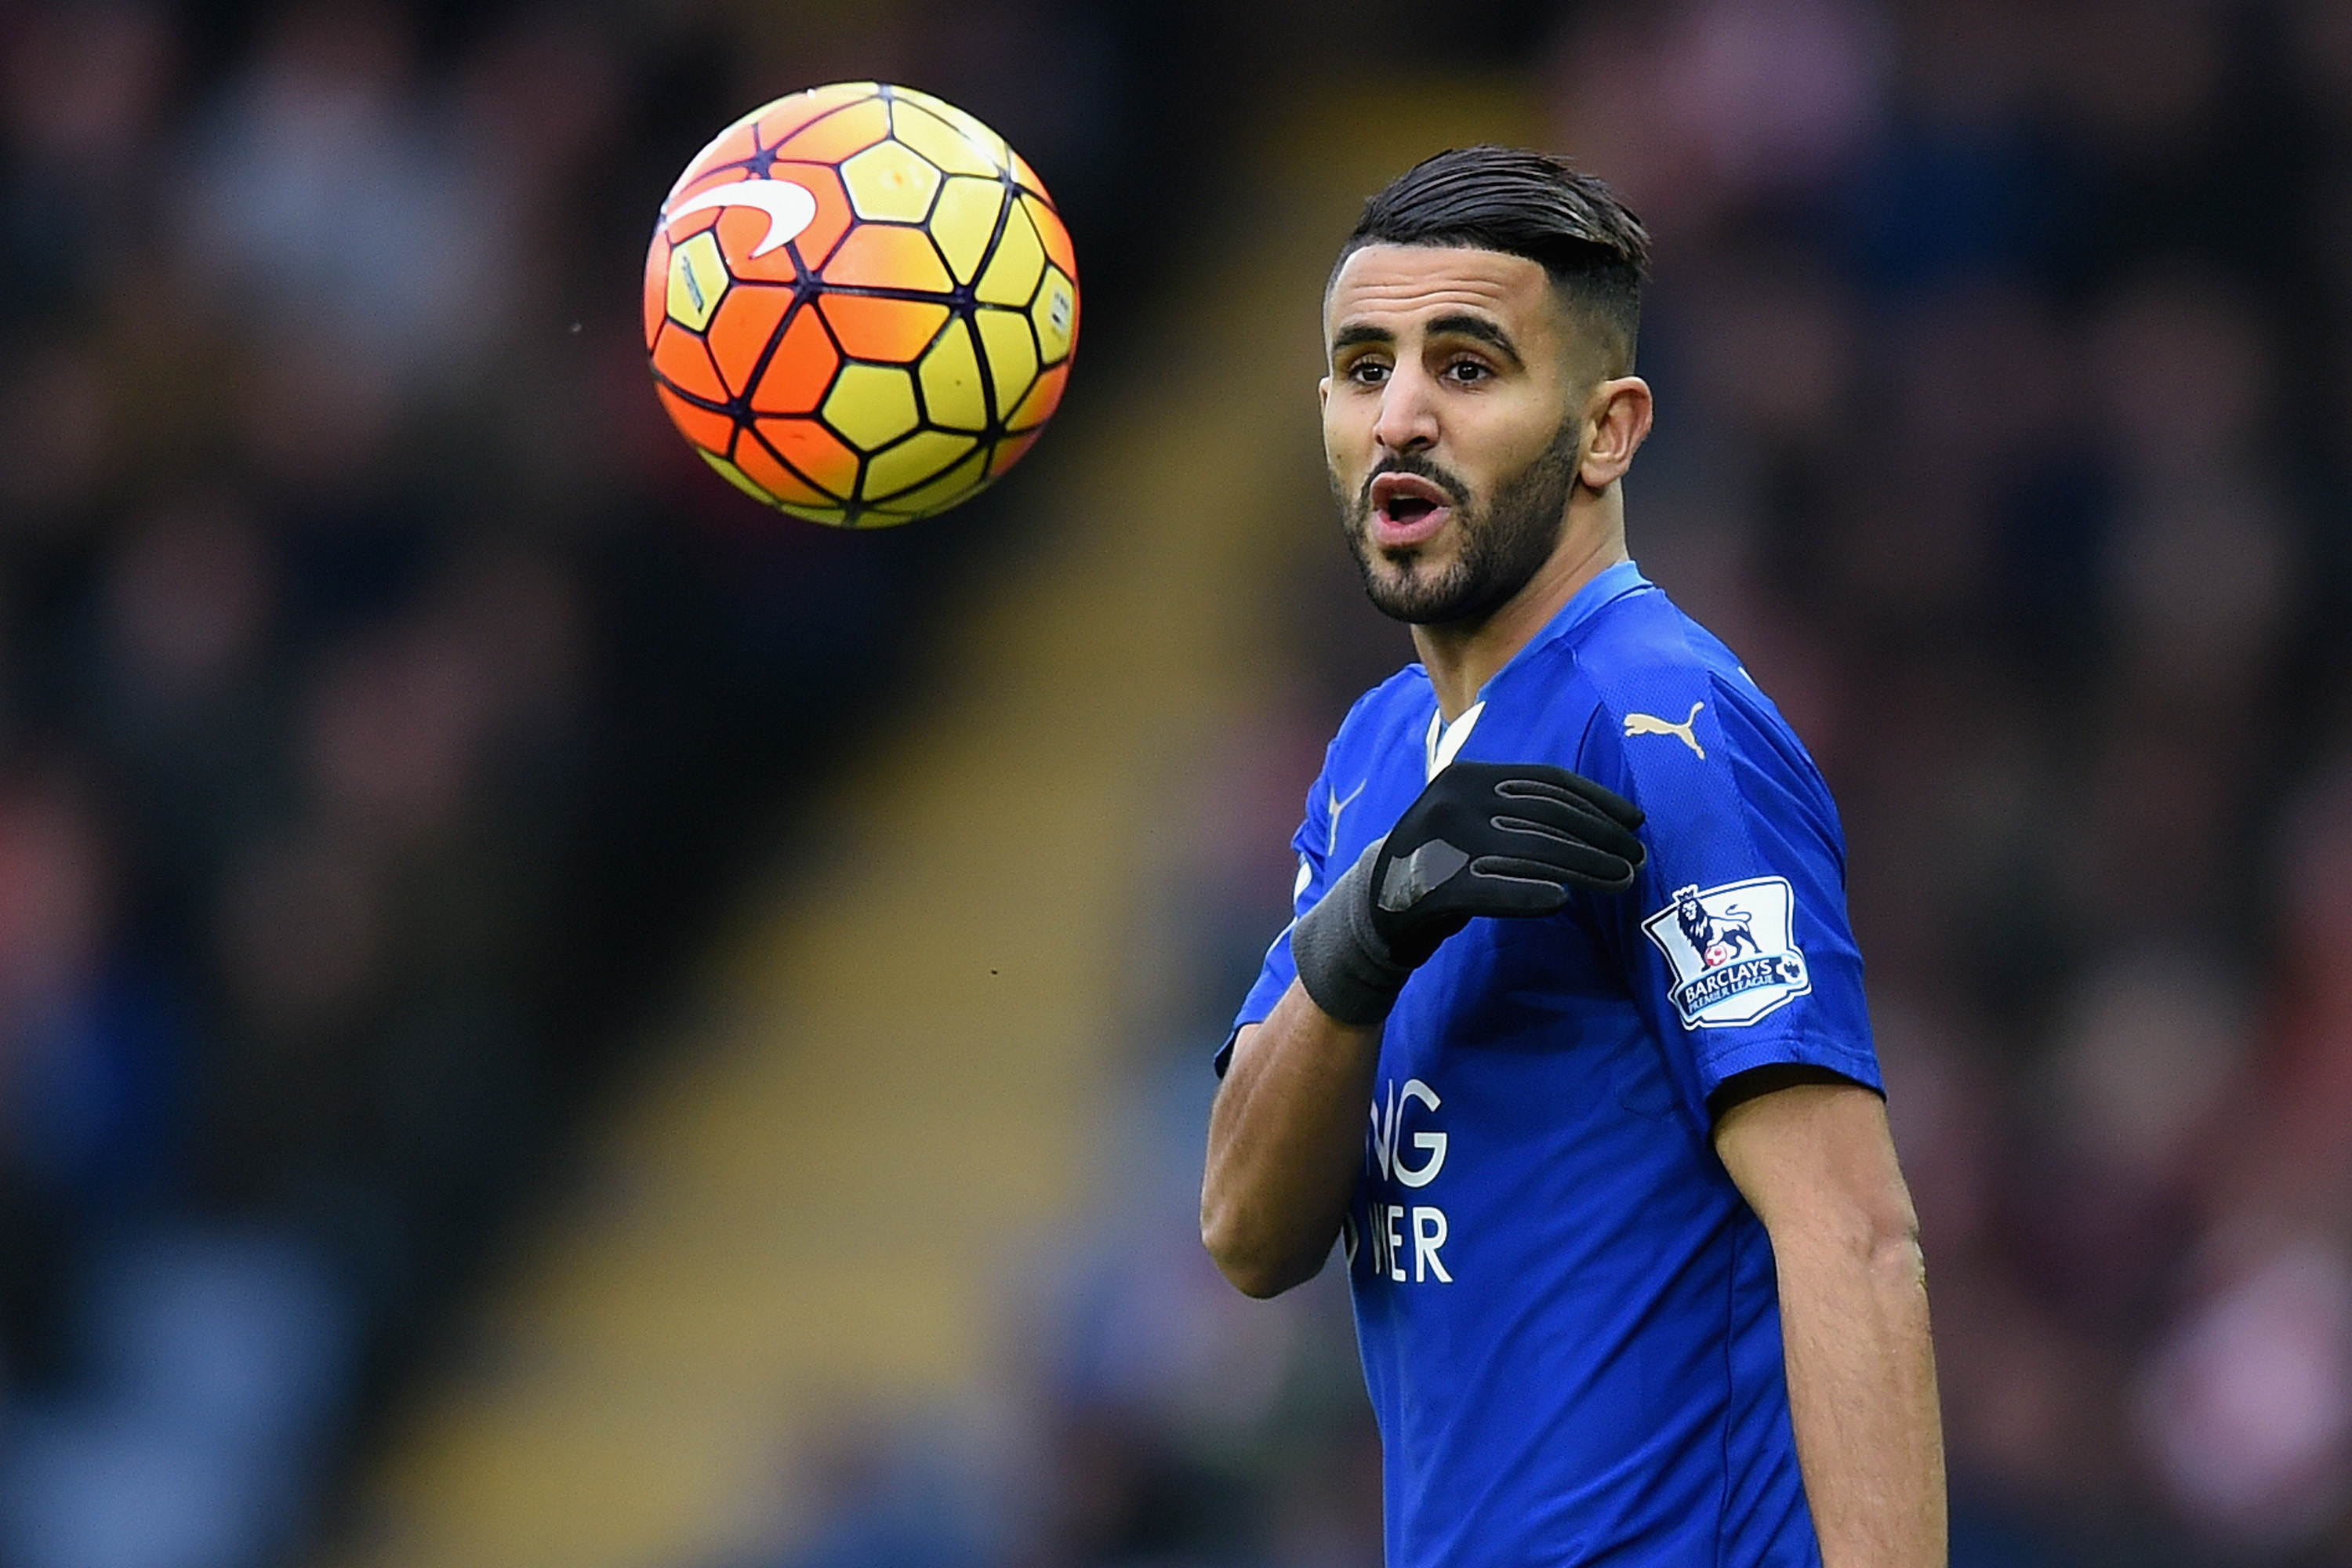 e8edf448b Arsenal fan puts Riyad Mahrez Arsenal kit up for sale after Mahrez re-signs  with Leicester